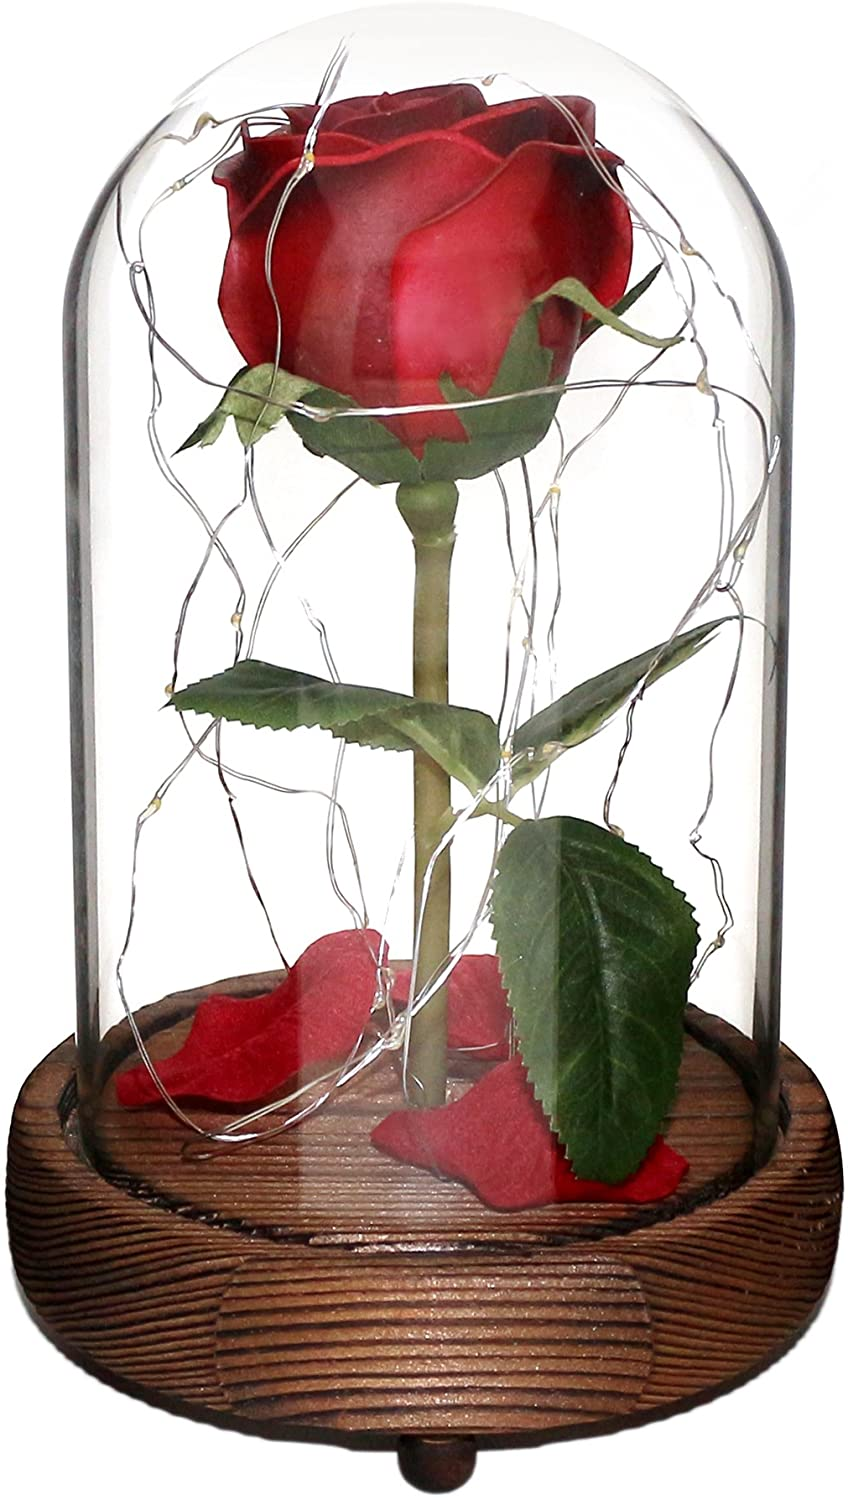 CVHOMEDECO. Battery Operated w/Timer LED Lighted and Red PU Rose with Fallen Petals in a Glass Dome, Great Gift for Valentine's Day Wedding Anniversary Birthday (Dia. 5-1/2 x H 9 Inch)